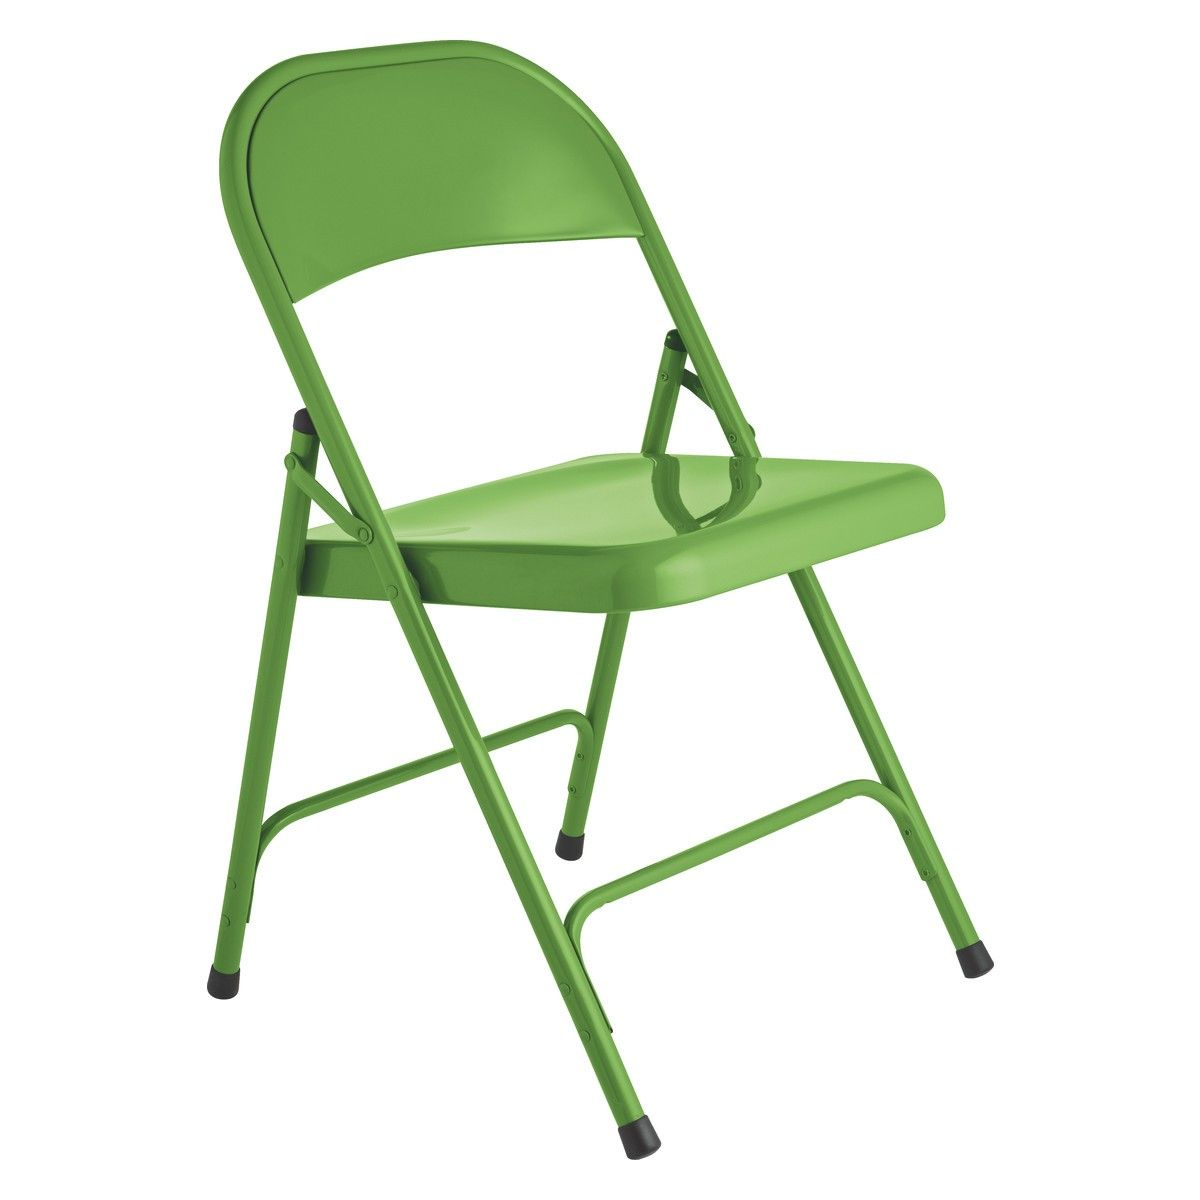 Folding Chair For Less Medical Chairs Sale Macadam Green Metal Buy Now At Habitat Uk I Think The Colour Would Look Good With Teak Wood And White Floor Tiles